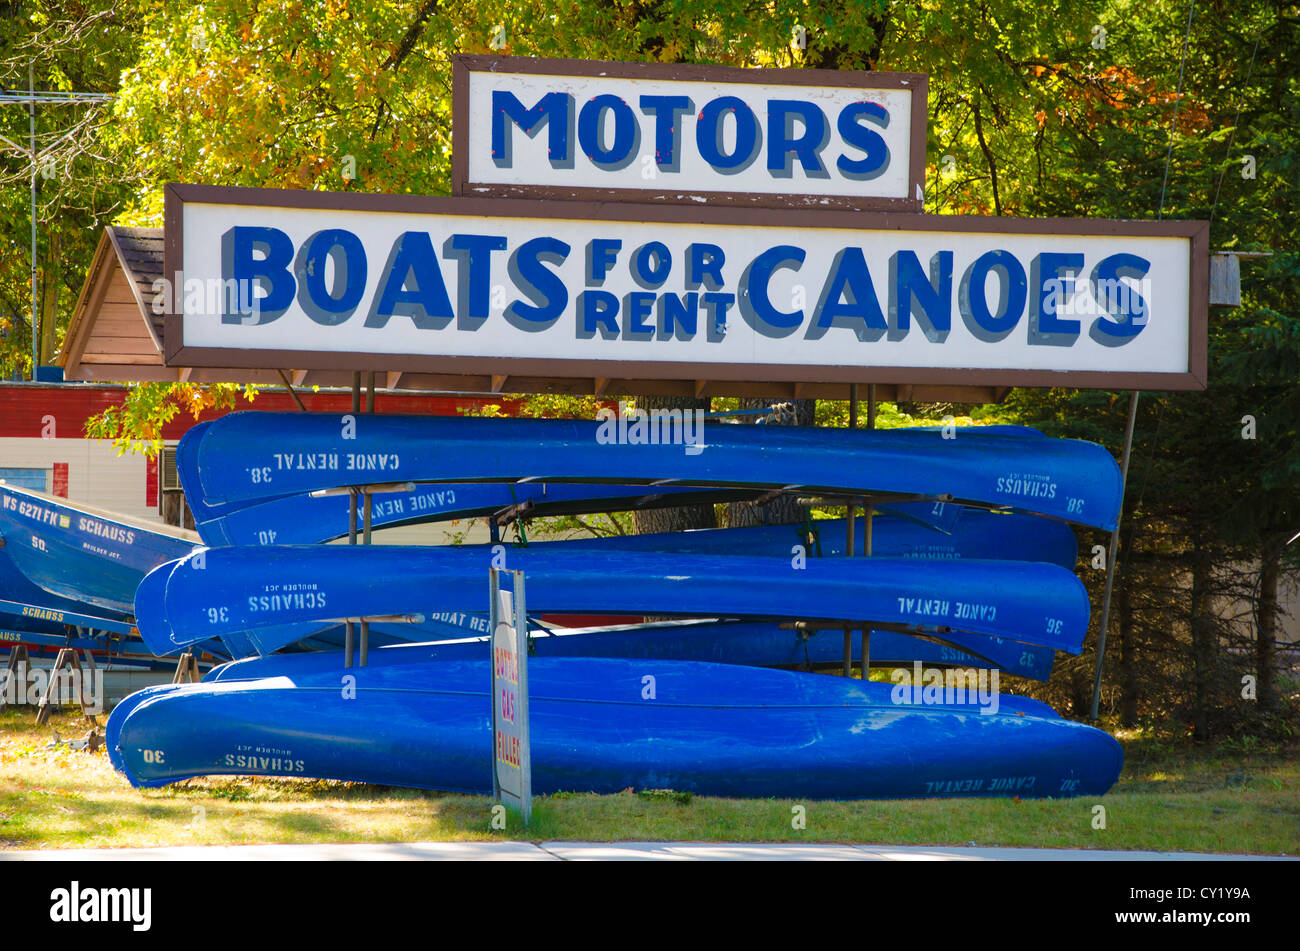 Schauss Woodwork Shop in Boulder Junction, Wisconsin, a town well-known for its fishing, offers boats for rent. - Stock Image